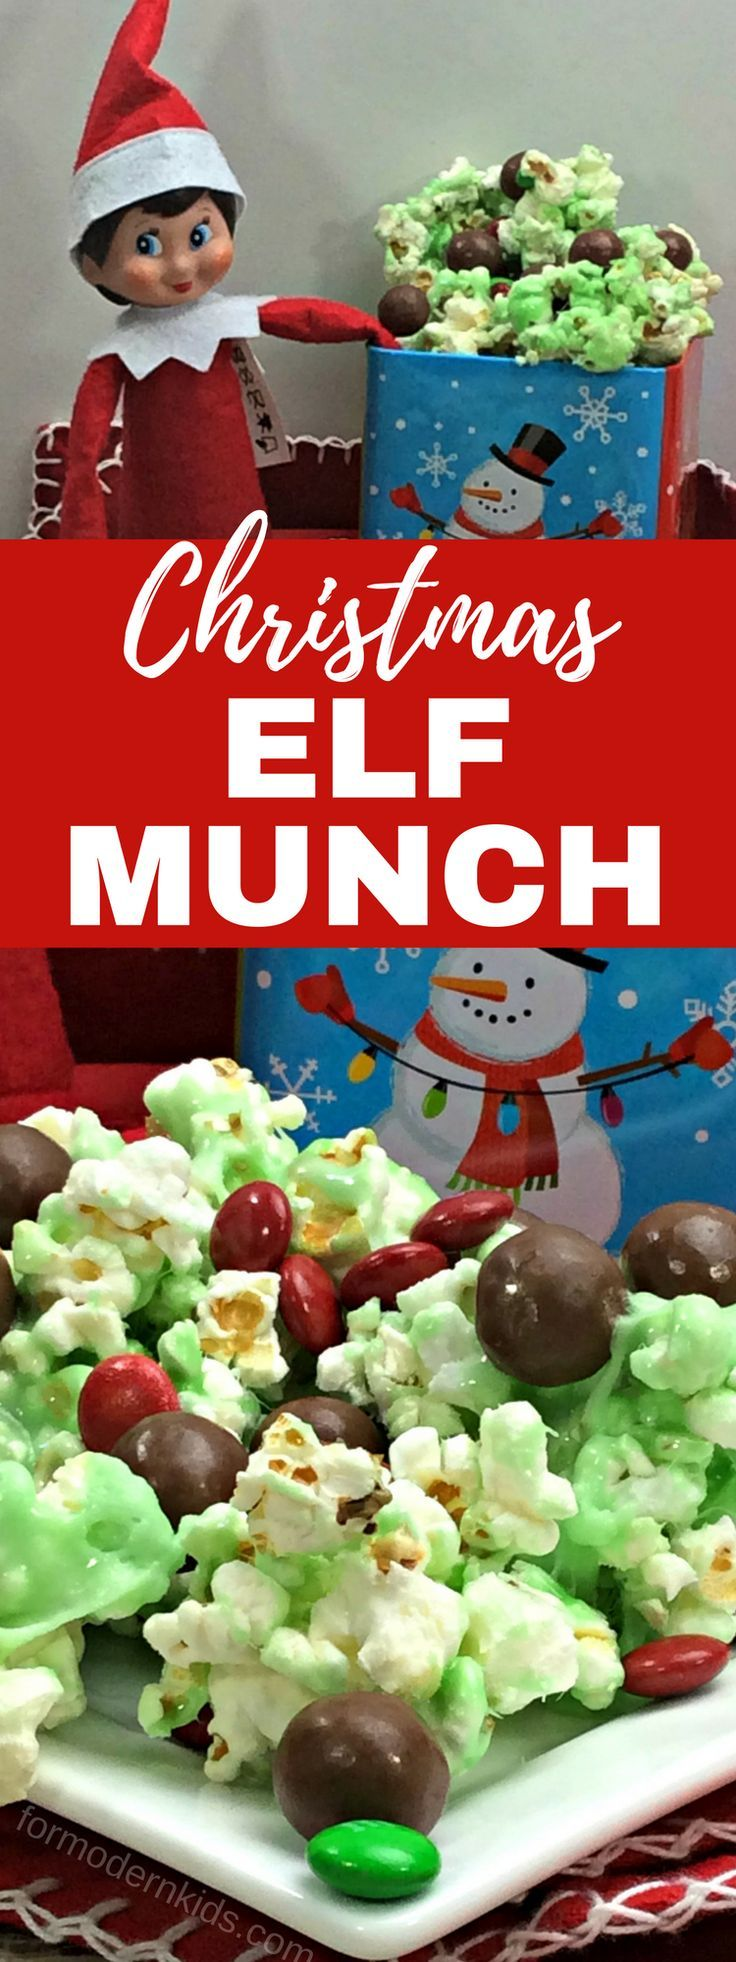 Need some good Elf on the Shelf ideas? Be ready for this Christmas season with this fun Elf on the Shelf recipe. We call it Elf Munch and not only will you be able to snack on it while you hide the elf this year, but it can also be used as a prop for the elf! #ElfOnTheShelfIdeas #Christmas #ElfOnTheShelf #ChristmasRecipes